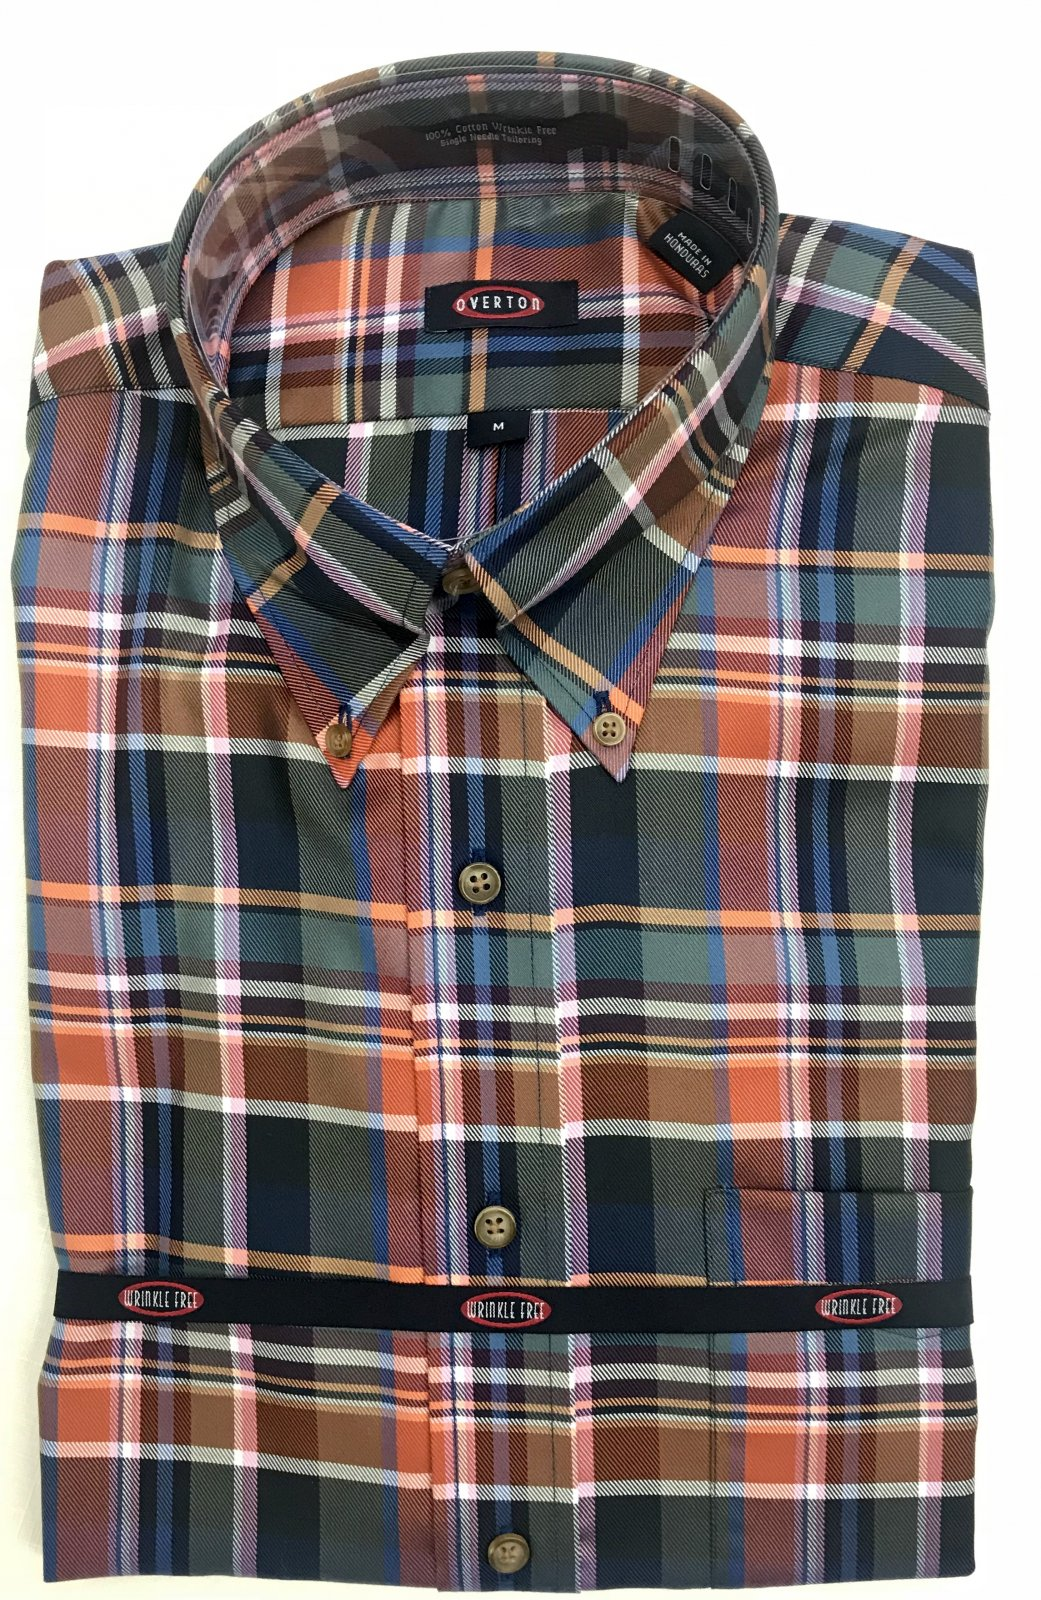 Overton Multi Plaid LS Sportshirt